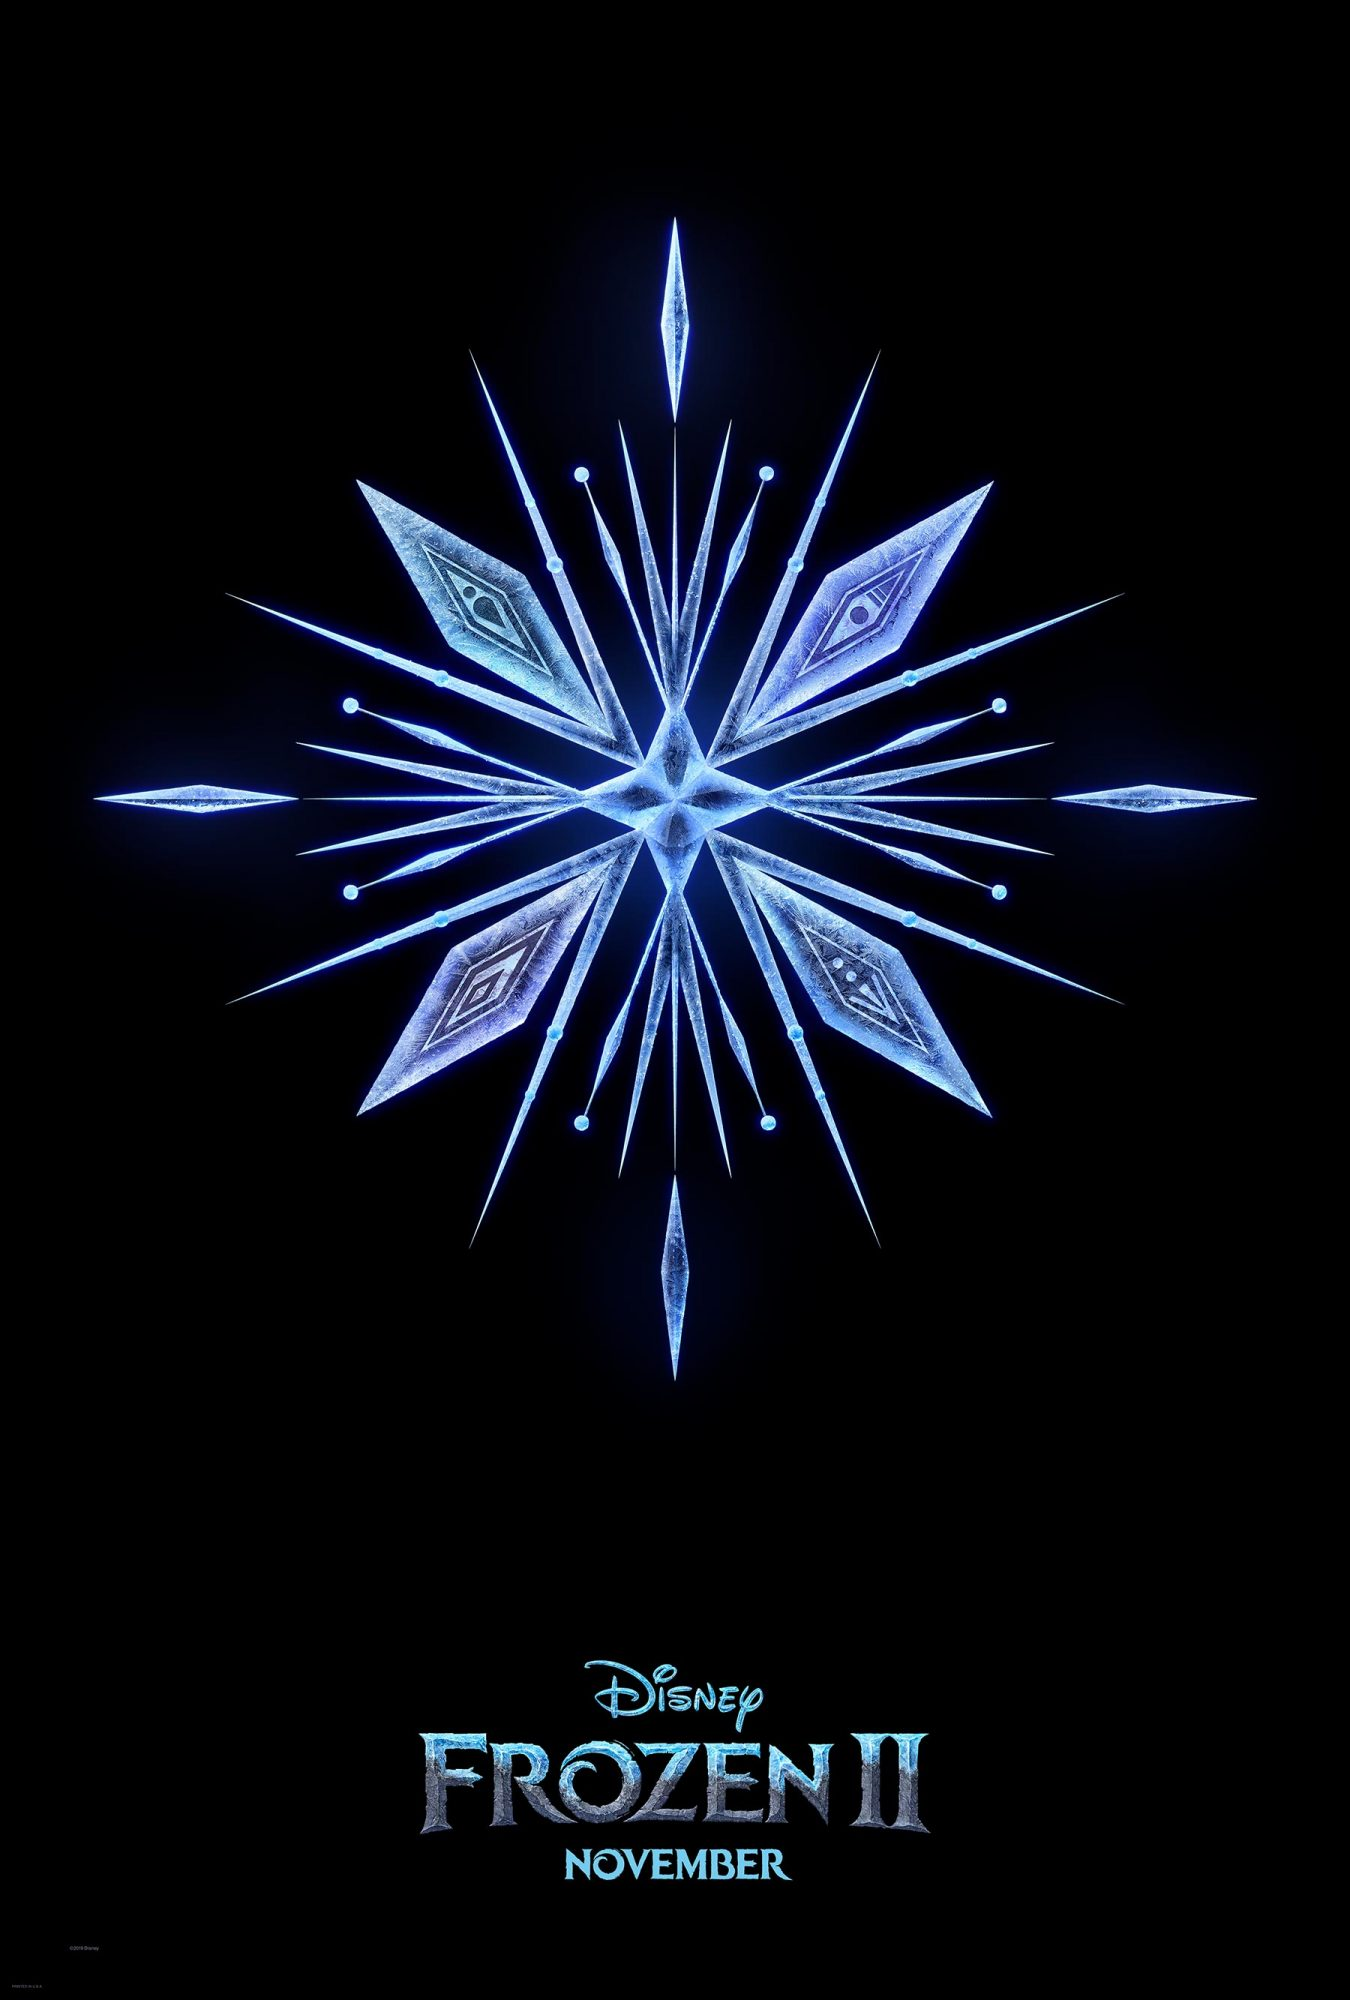 Anna and Elsa return in first teaser for Frozen 2 fp_snowflake_tsr_a1_glowb_1s_v3